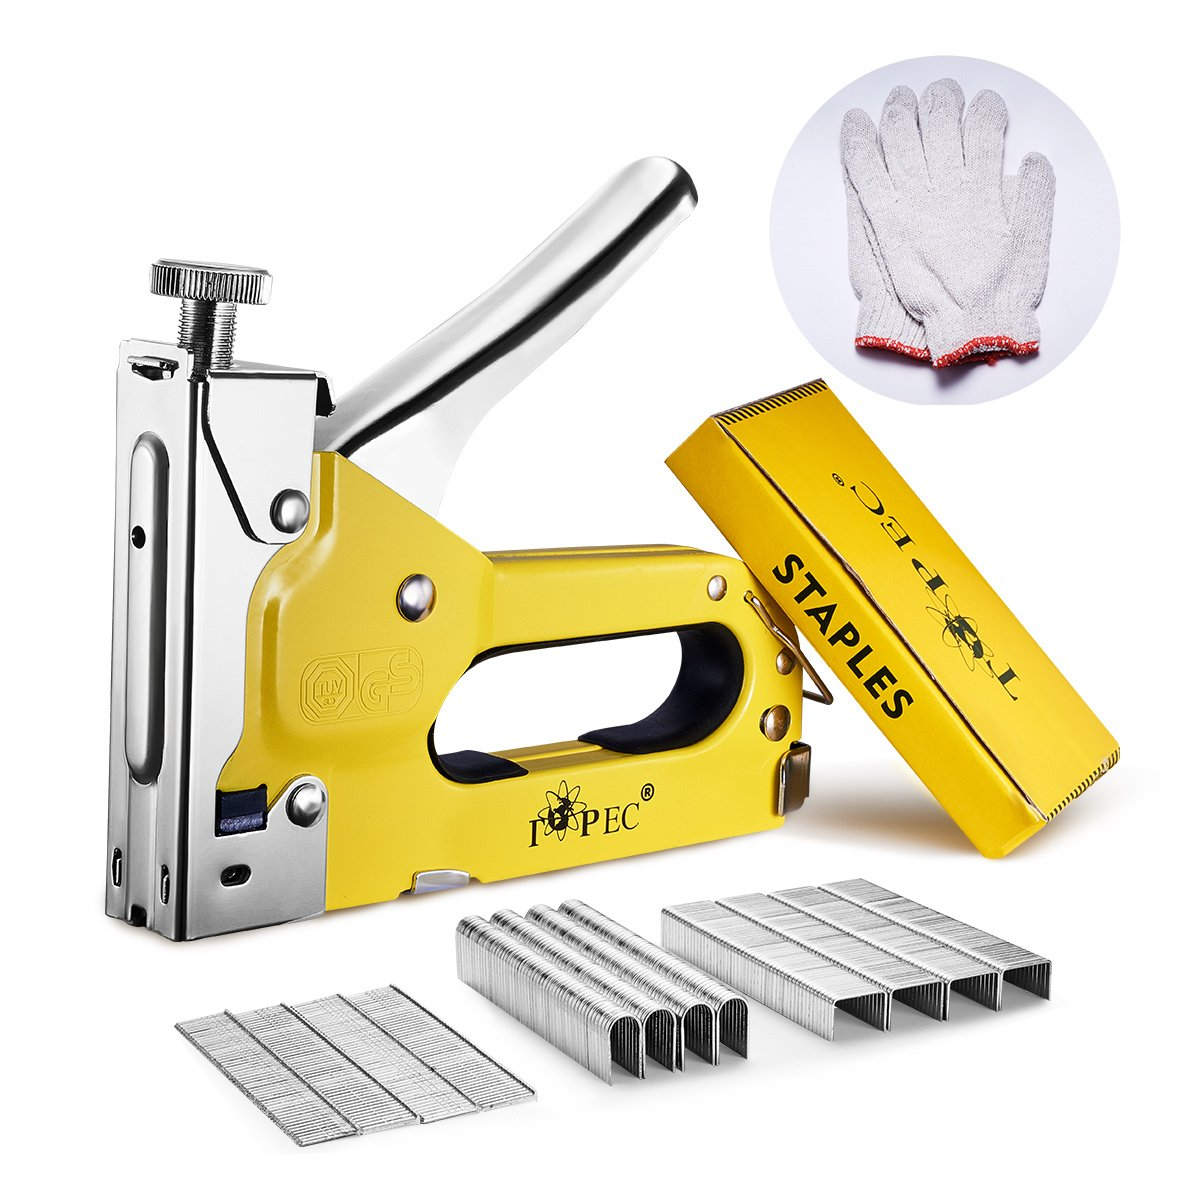 Staple Gun, Topec 3 in 1 Staple/Brad Nail Gun with 1800 Staples & A Pair of Gloves, 3 Way Tacker for Upholstery, Fixing Material, Decoration, Carpentry, Furniture, Billboards (non-rubber grip)